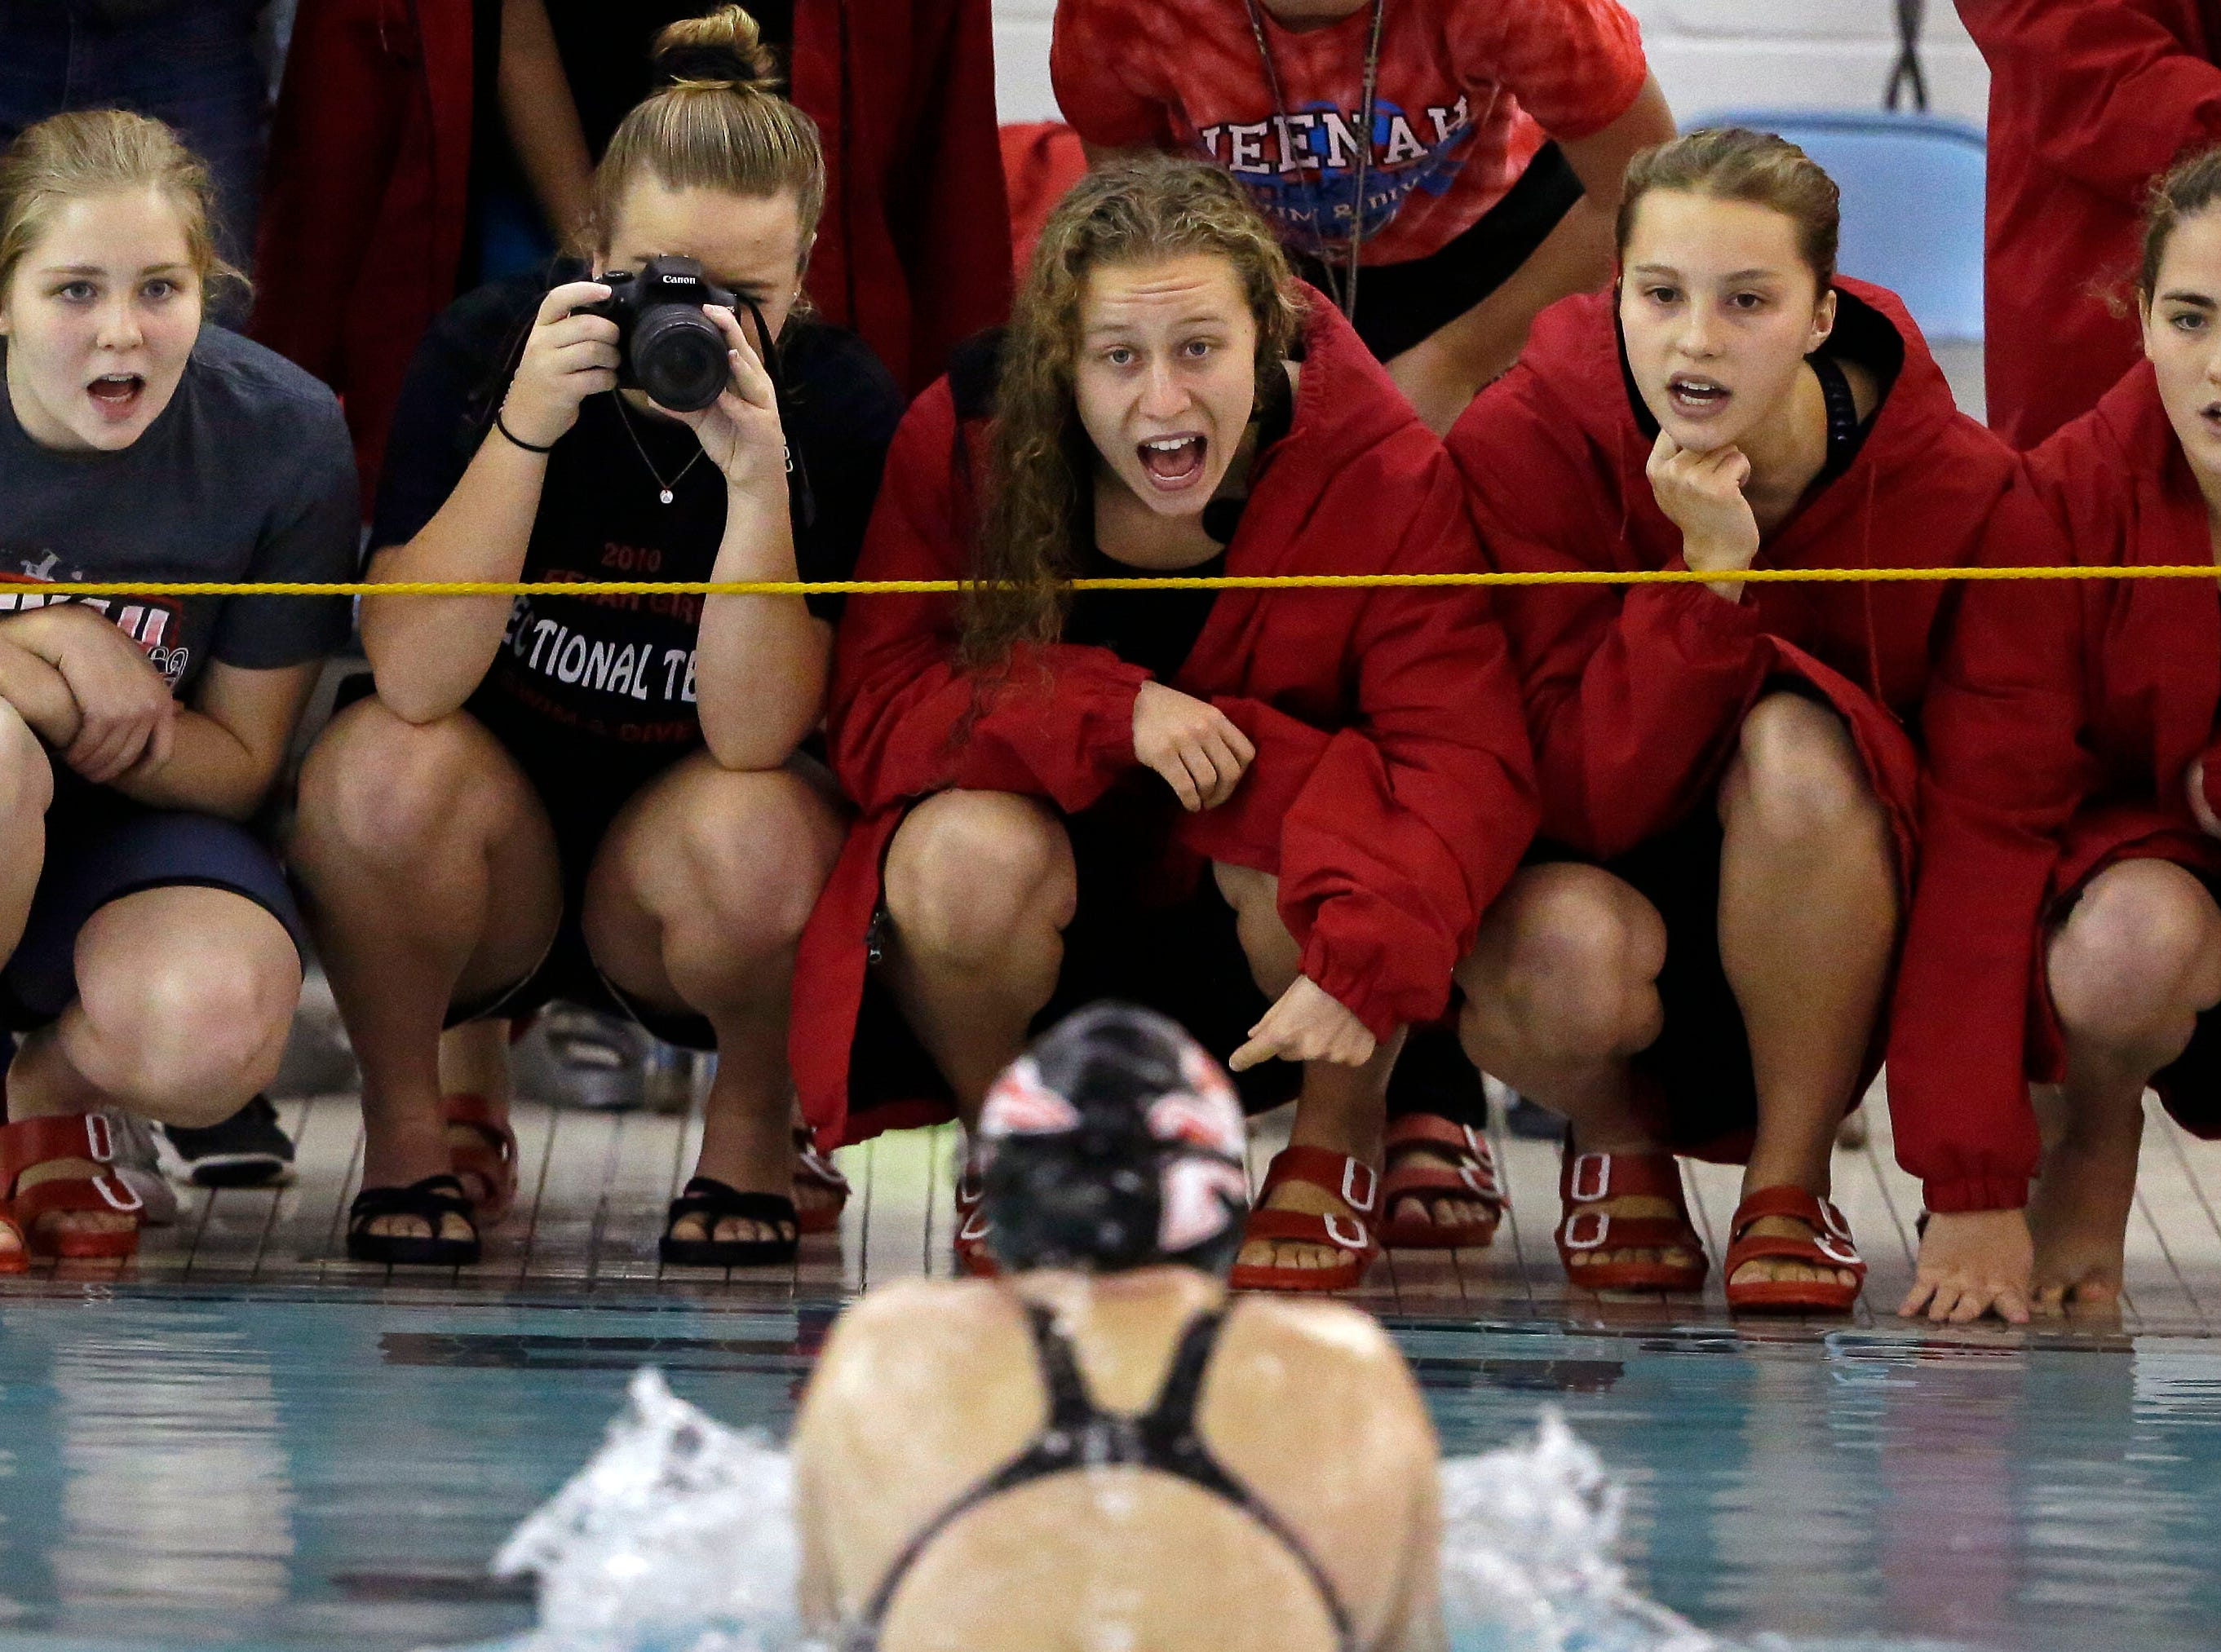 Kara Cowell of Neenah is cheered on during the 100 Yard Breaststroke as the WIAA Division 1 swimming sectional meet takes place Saturday, November 3, 2018, at Neenah High School in Neenah, Wis. Winners advanced to state.Ron Page/USA TODAY NETWORK-Wisconsin